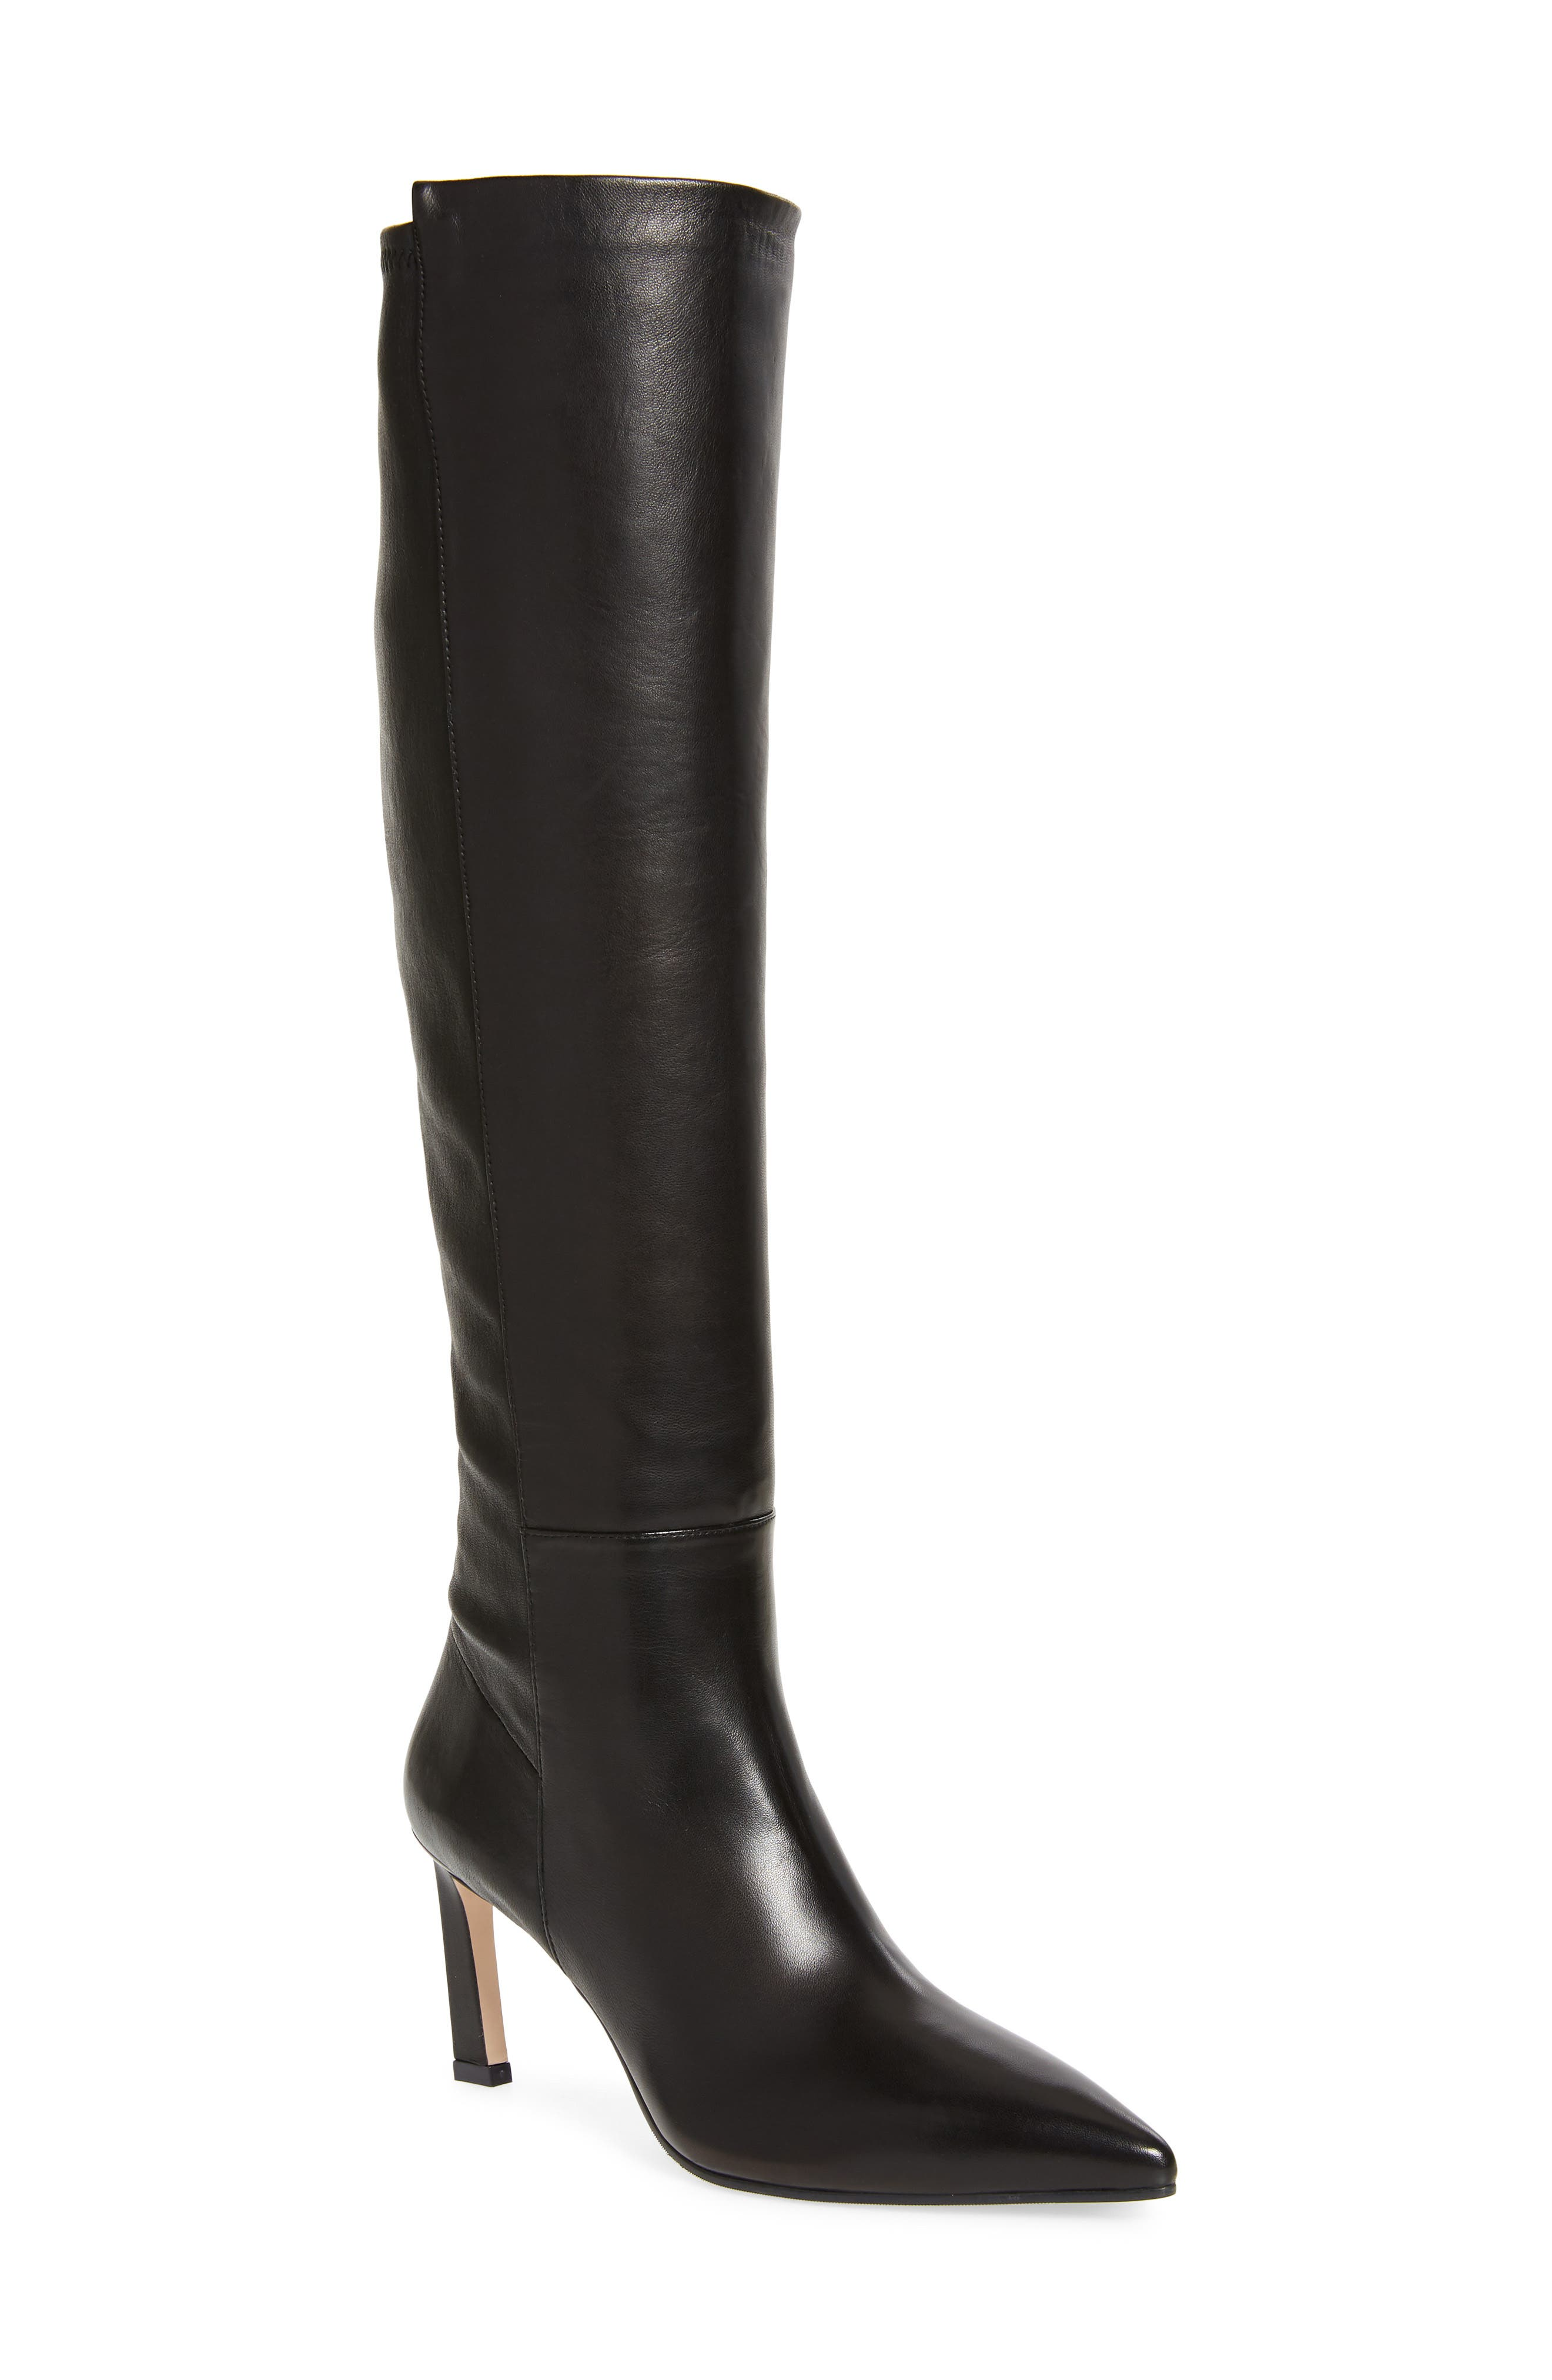 Demi Over the Knee Boot,                             Main thumbnail 1, color,                             003